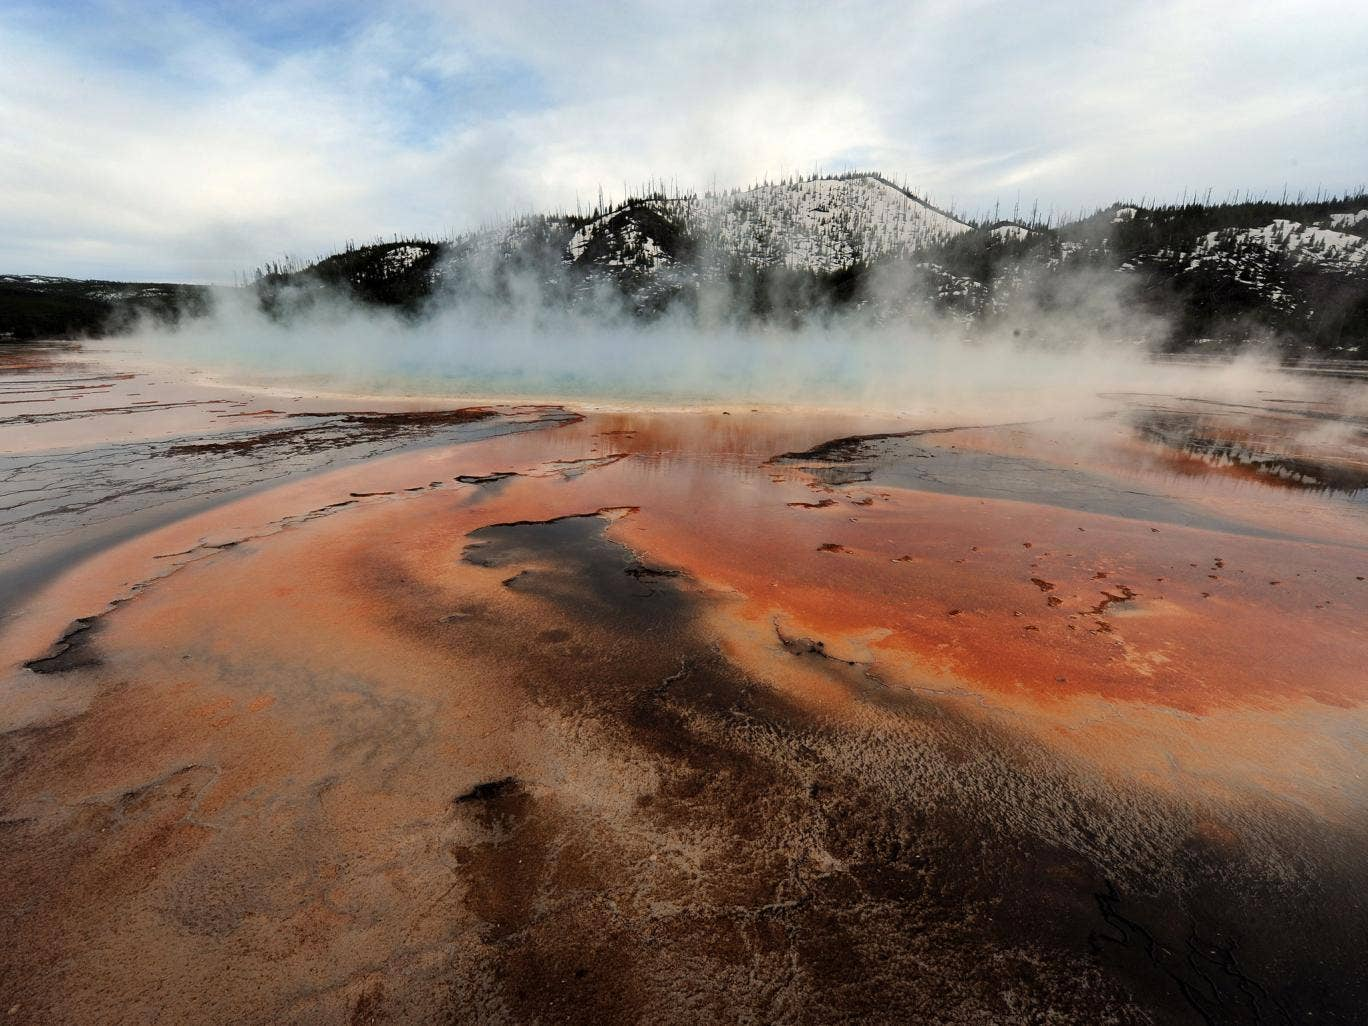 View of the 'Grand Prismatic' hot spring in the Yellowstone National Park, Wyoming on 1 June 2011